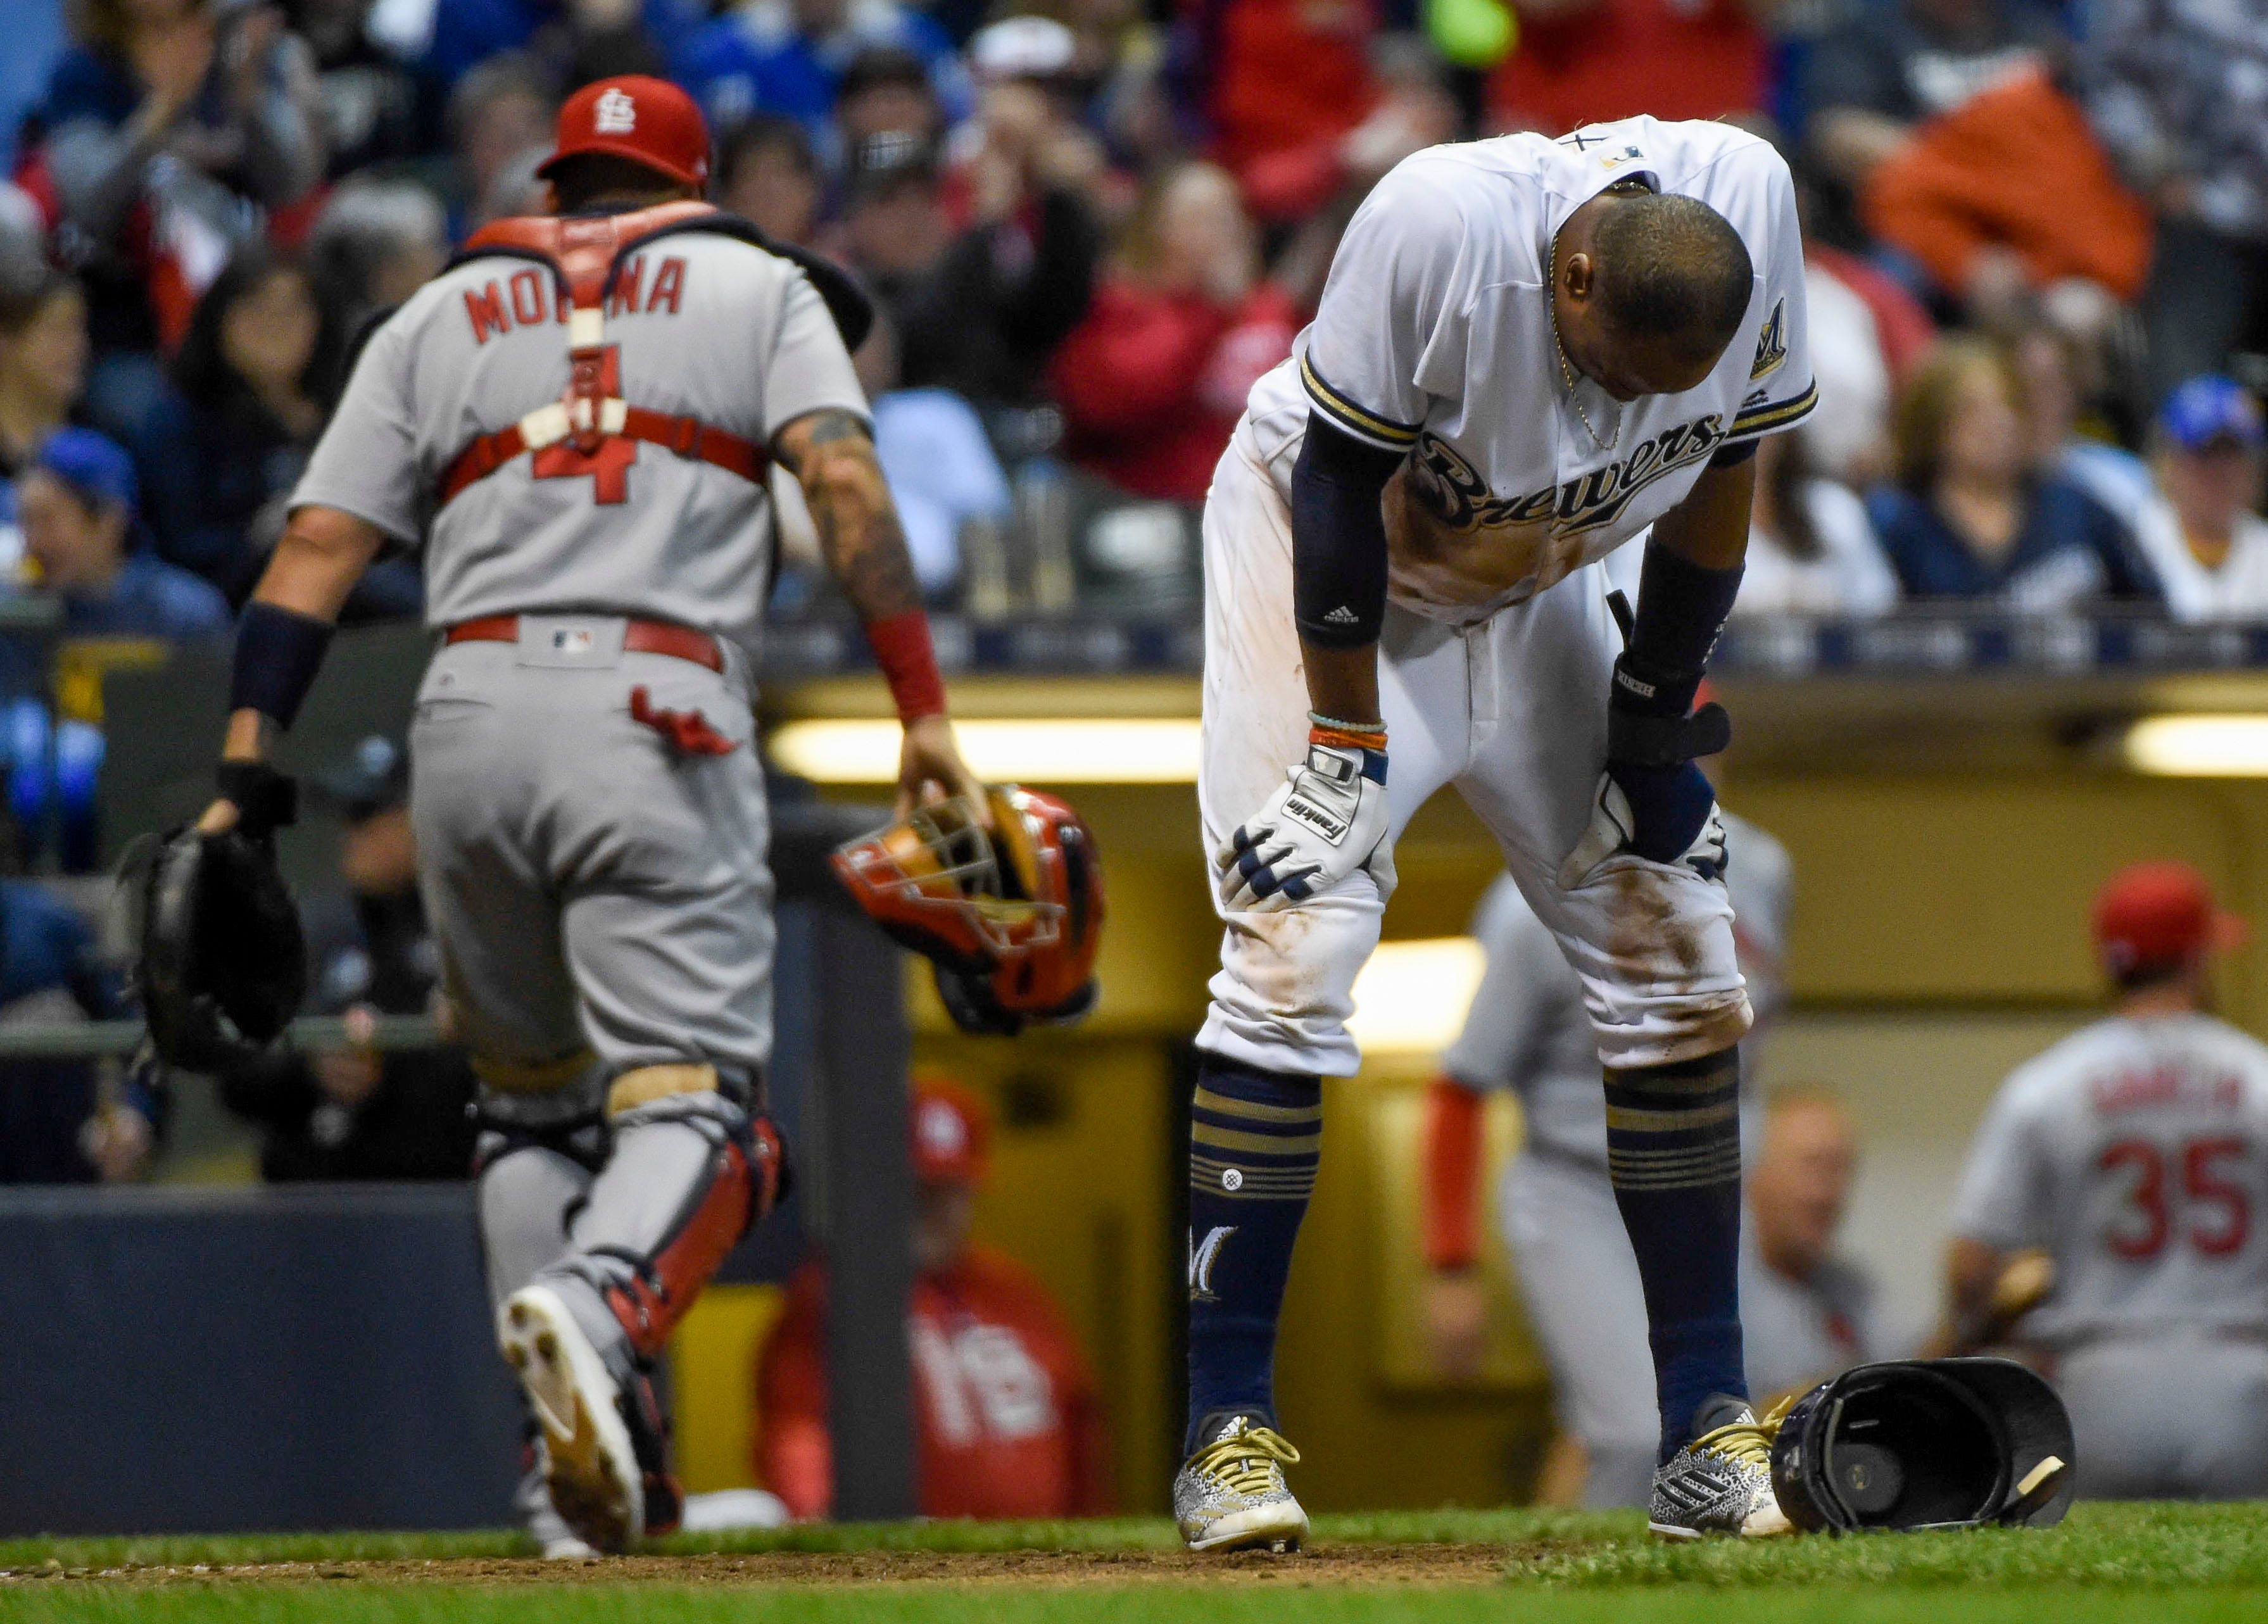 Brewers fail to do the little things against Cardinals